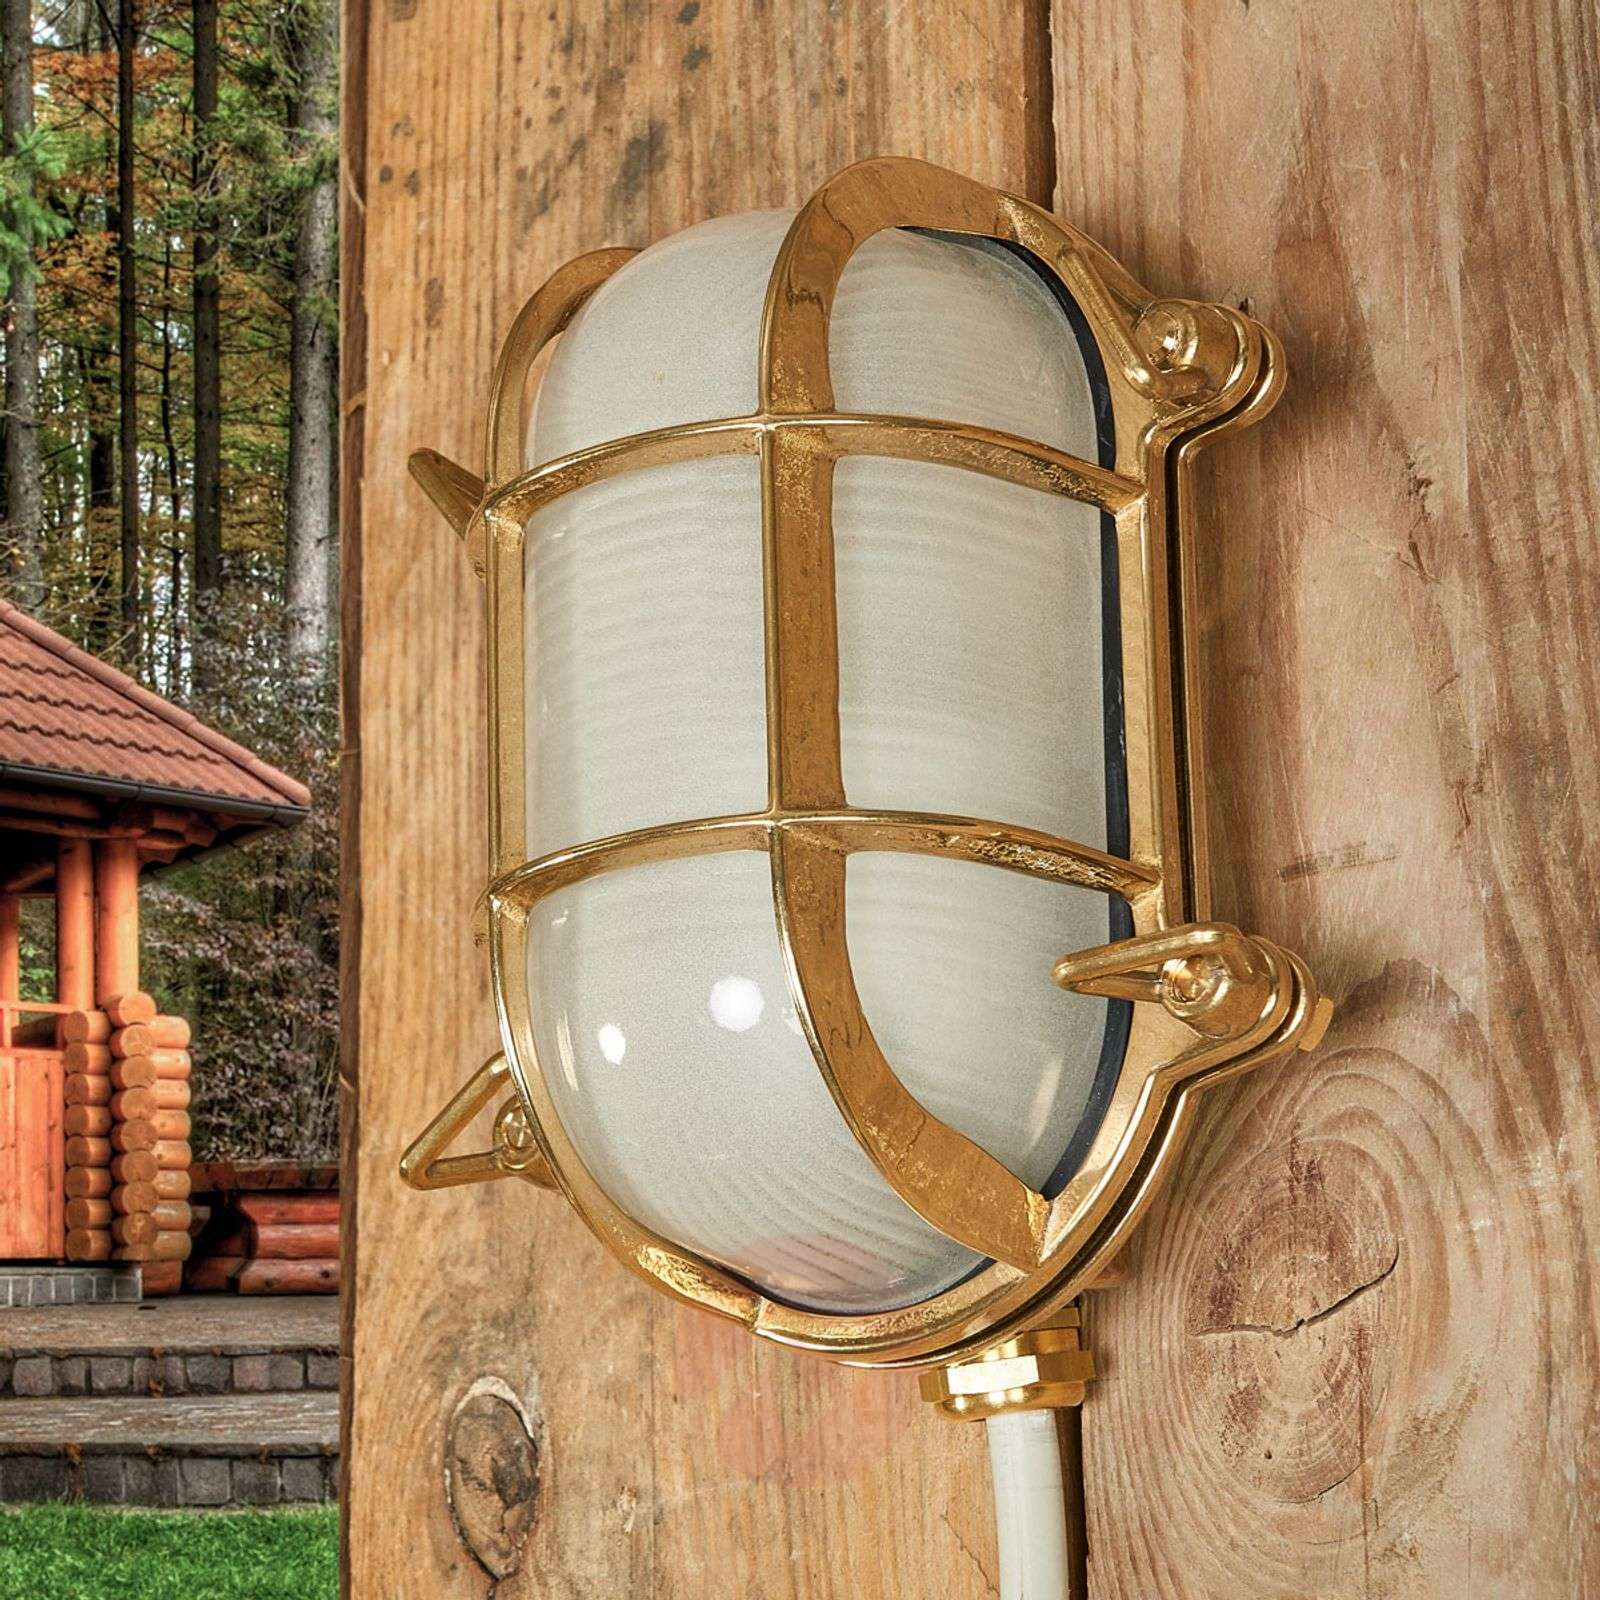 Oval outdoor wall light Bengt brass-6515264-01